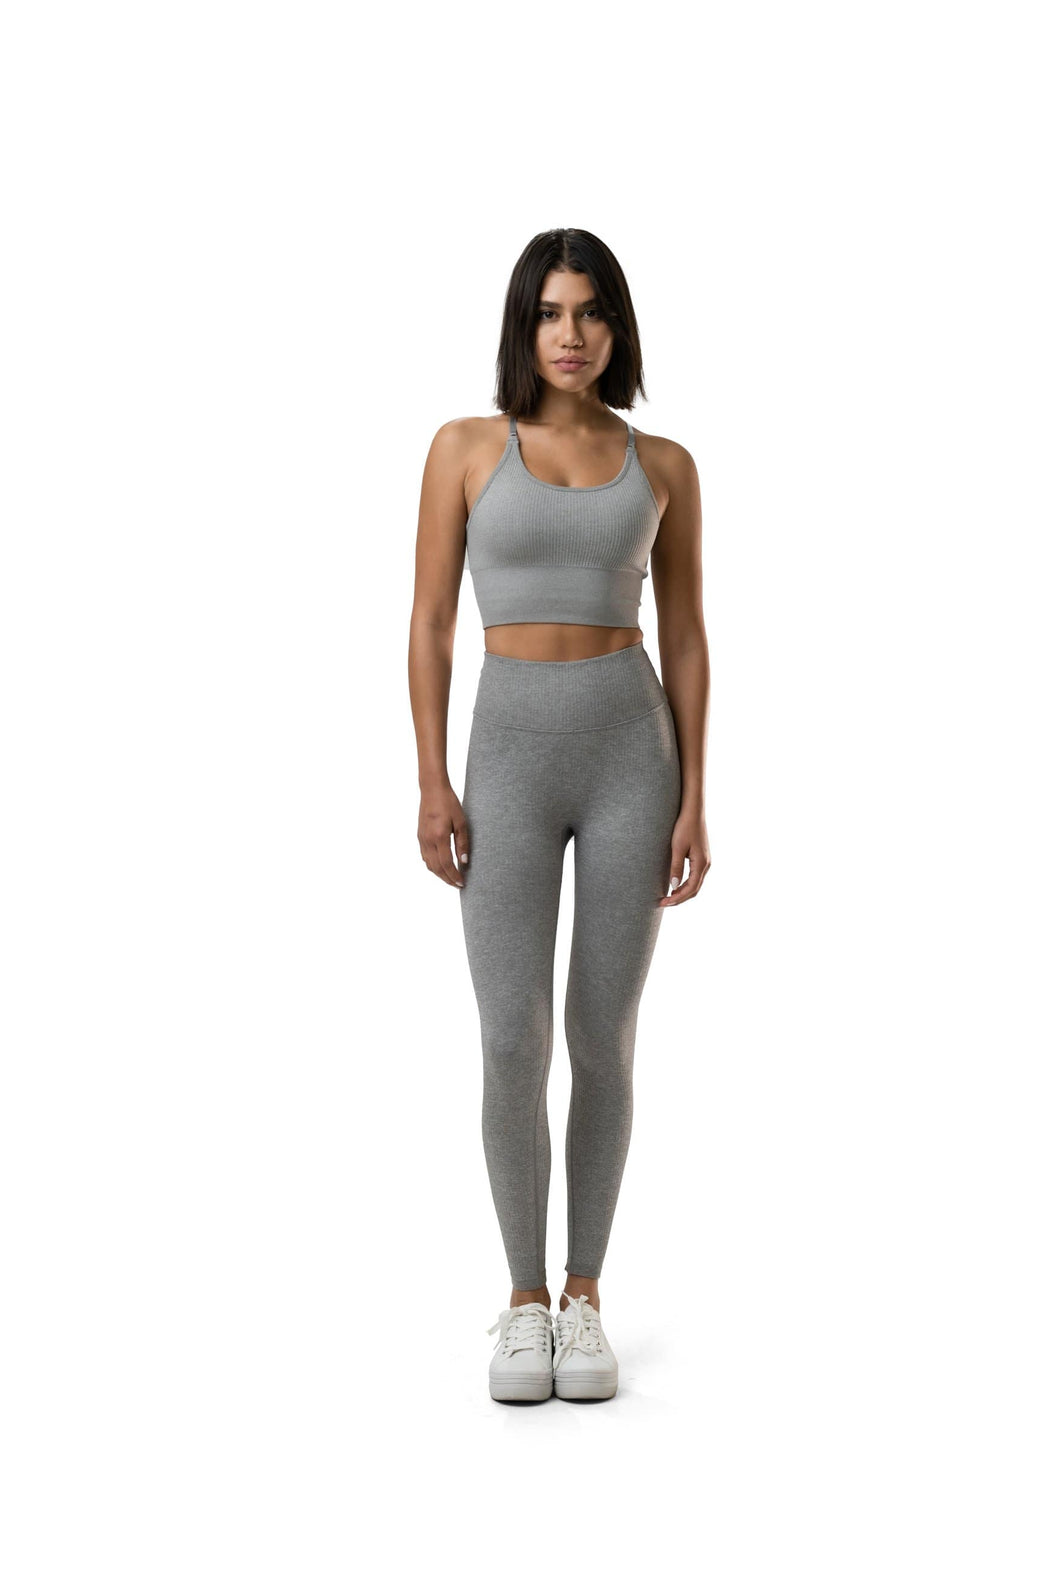 Balance Athletica Bottoms The Linear Pant - Still Heather